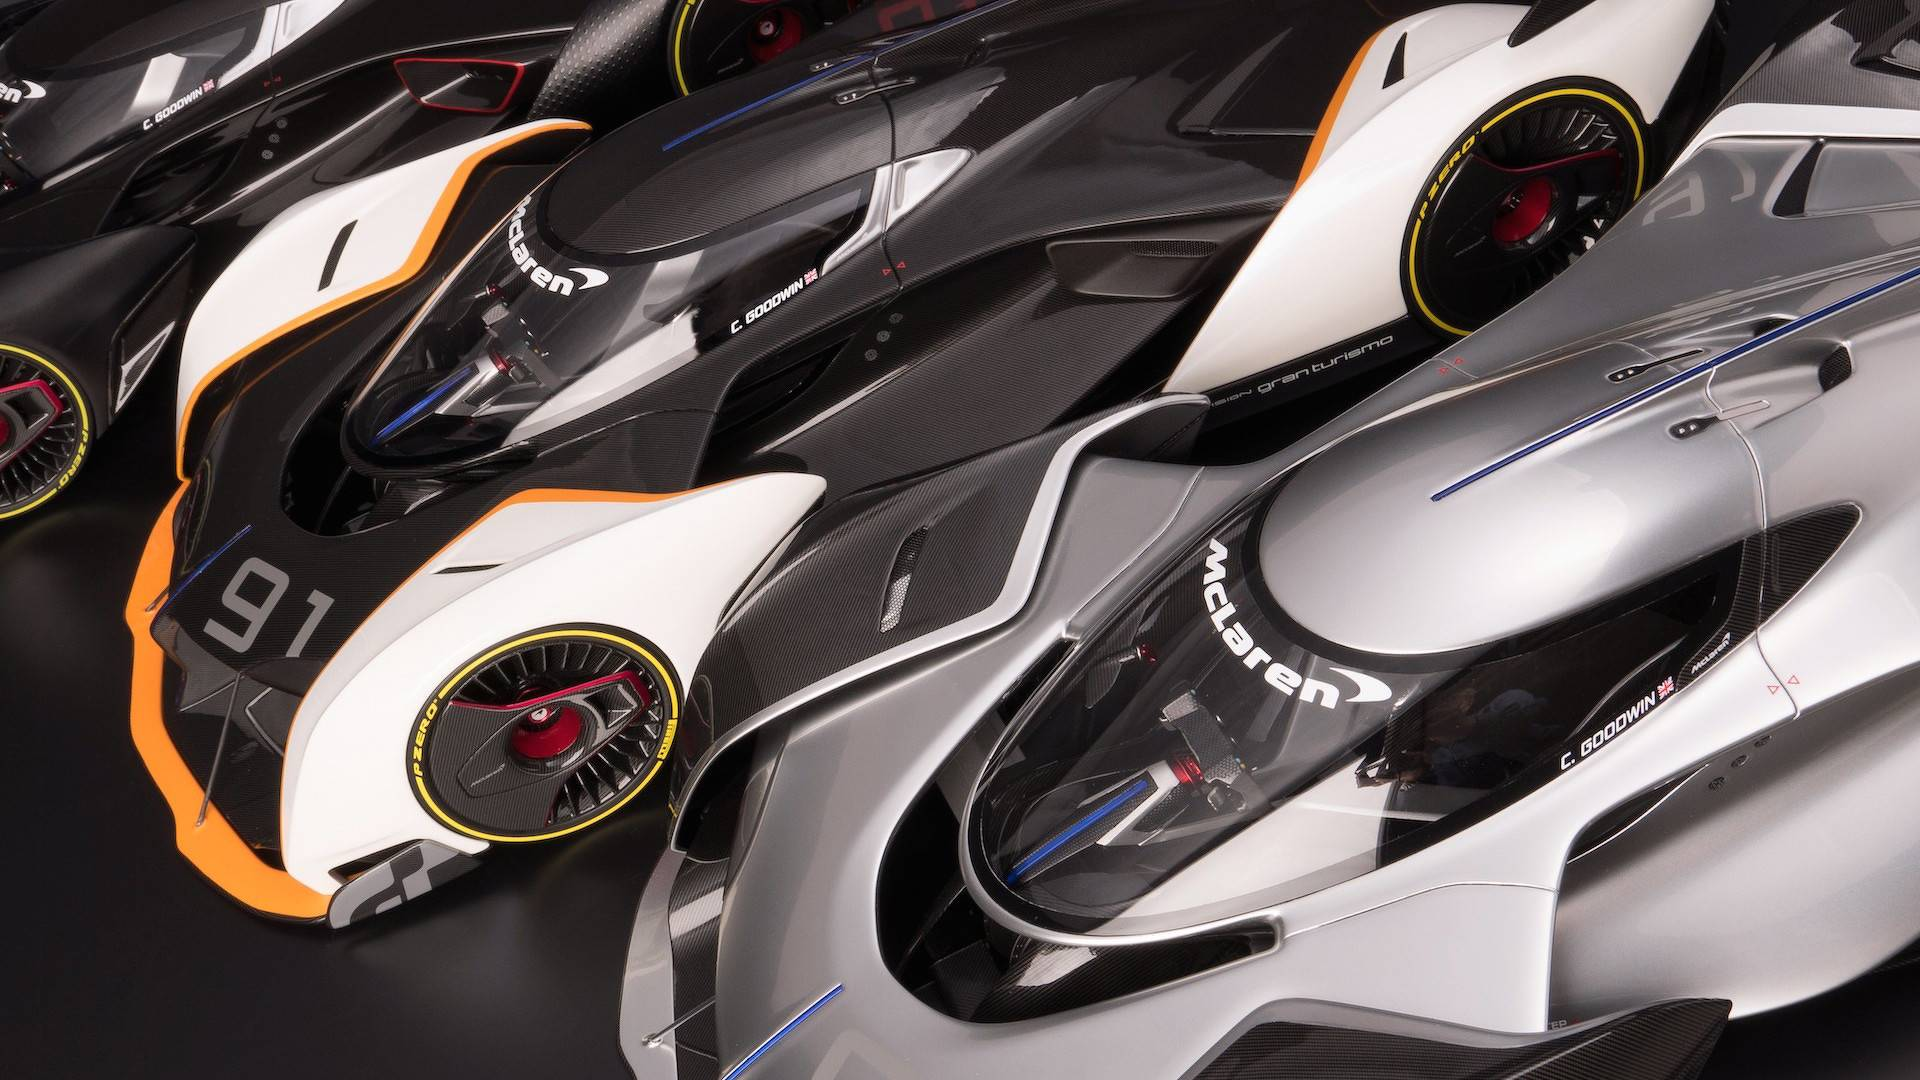 mclaren-ultimate-vision-gt-scale-model (11)